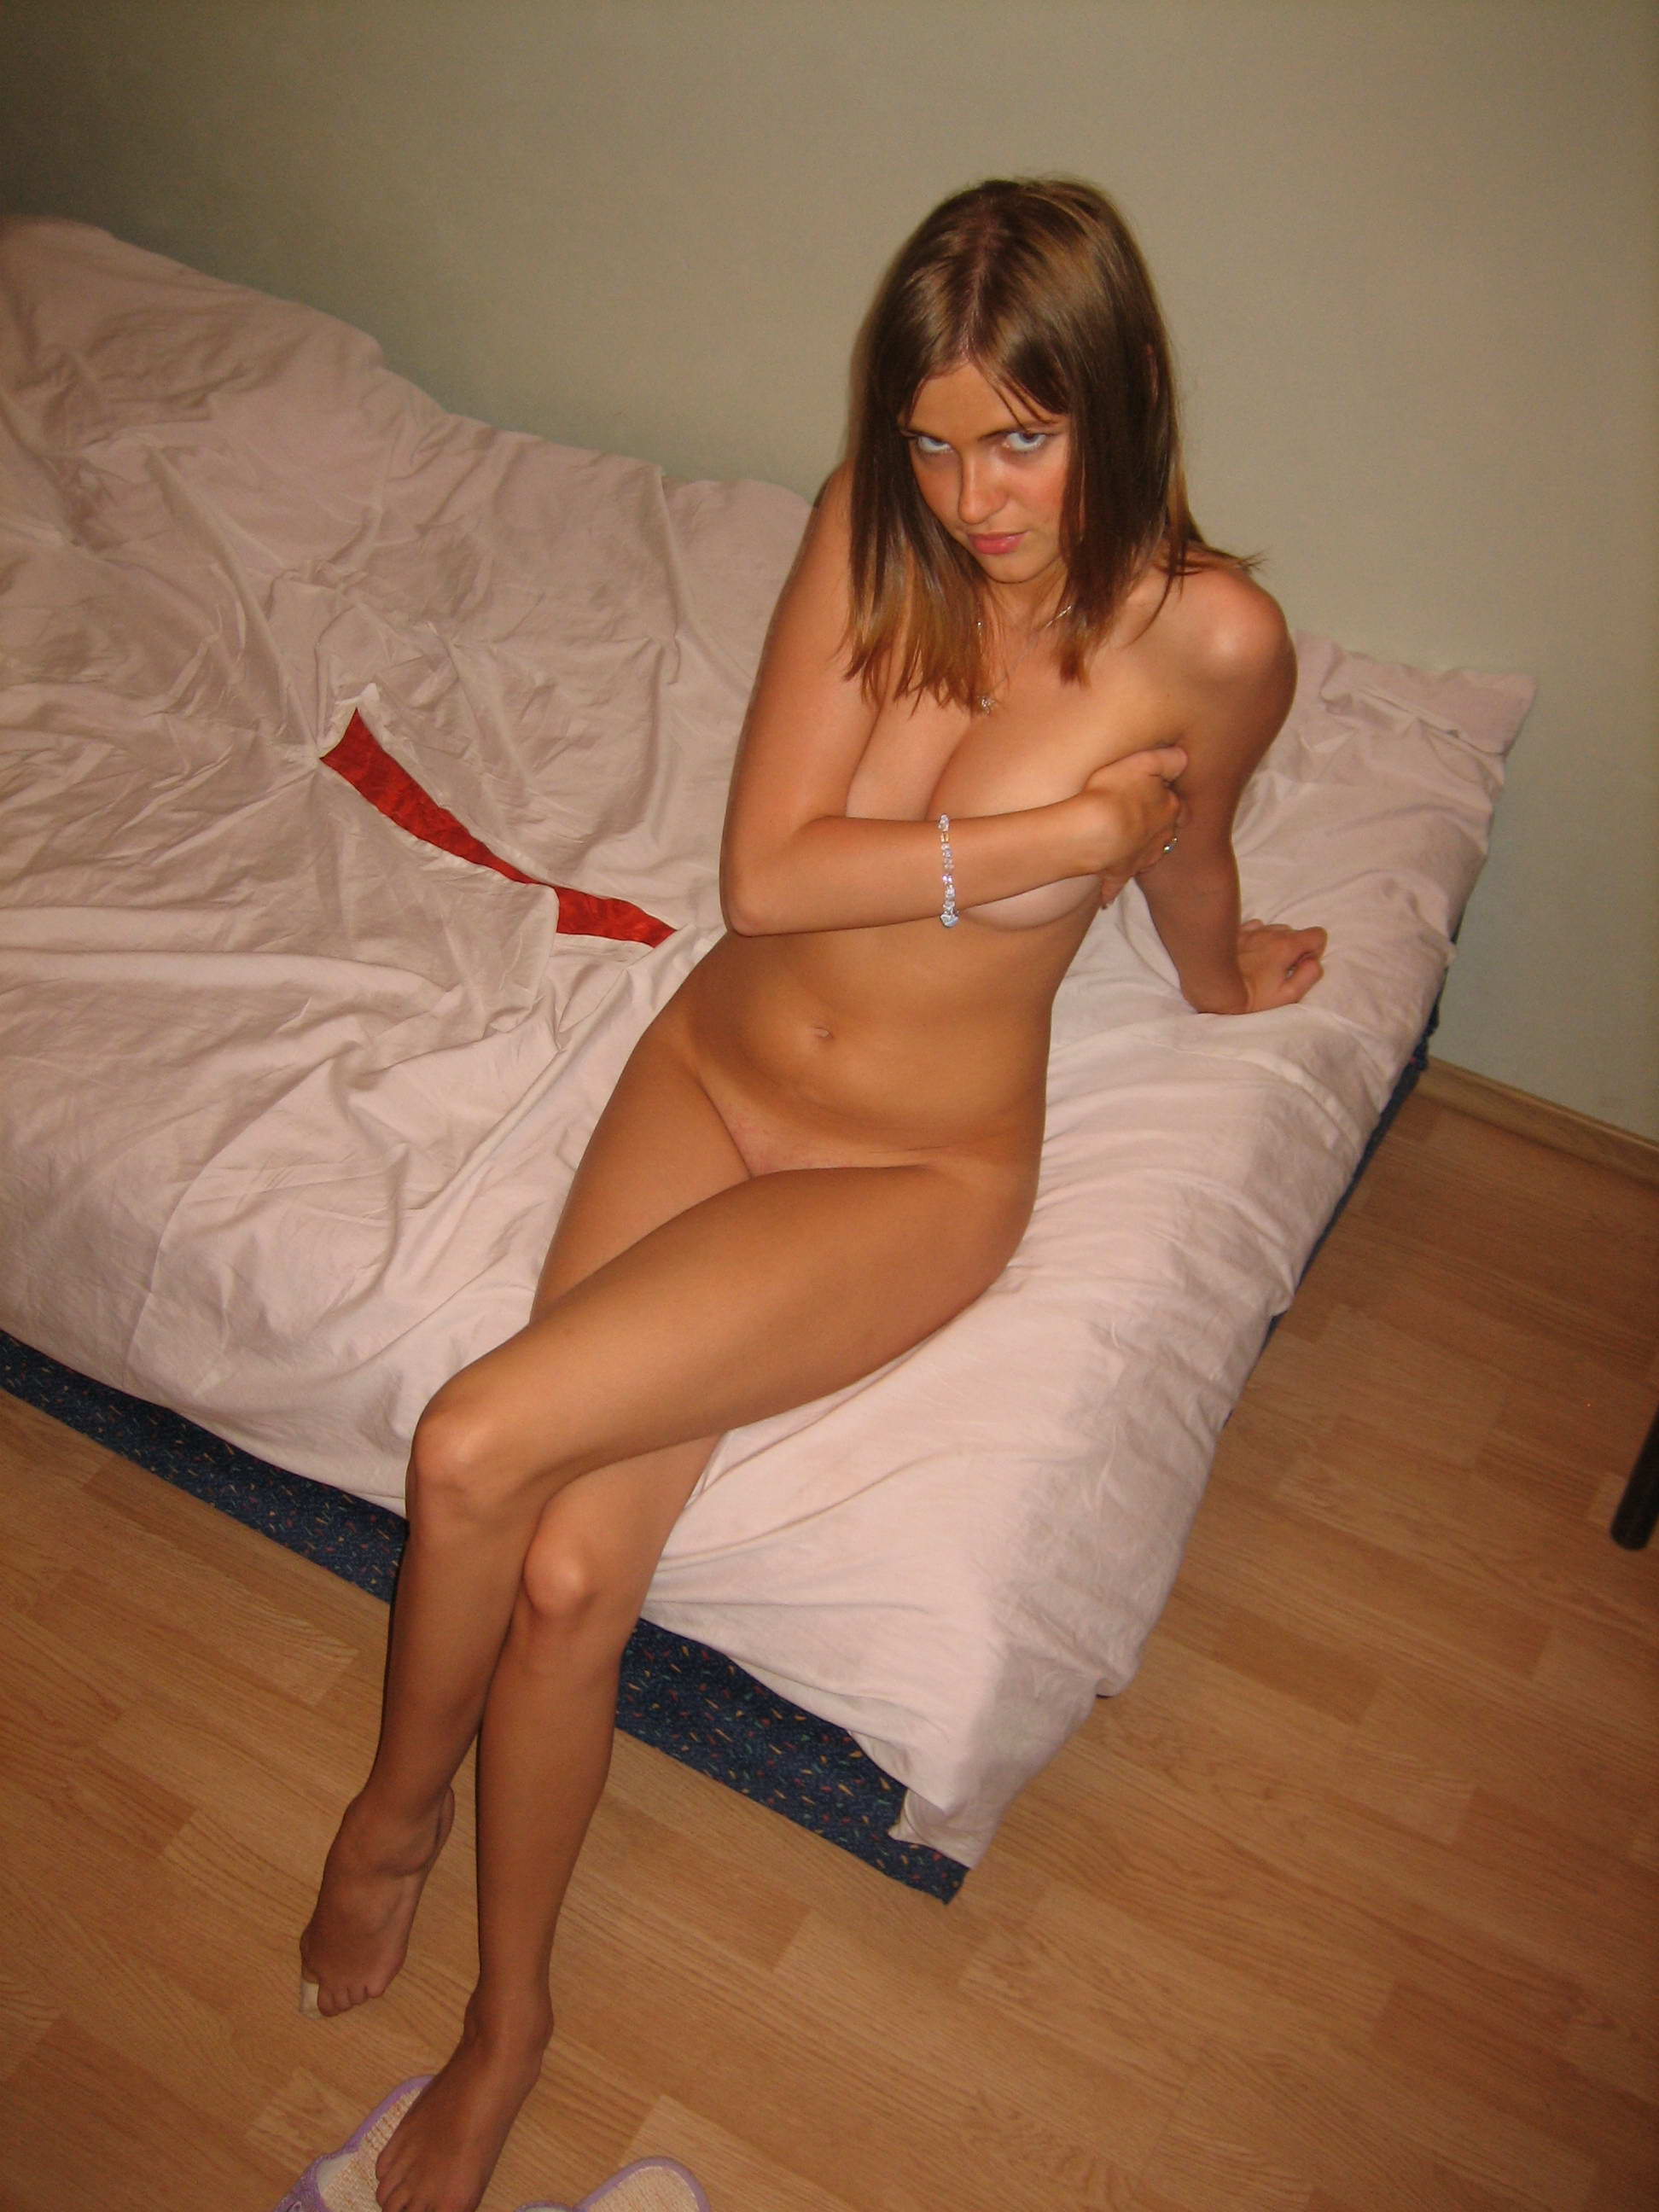 oral and anal sex pics